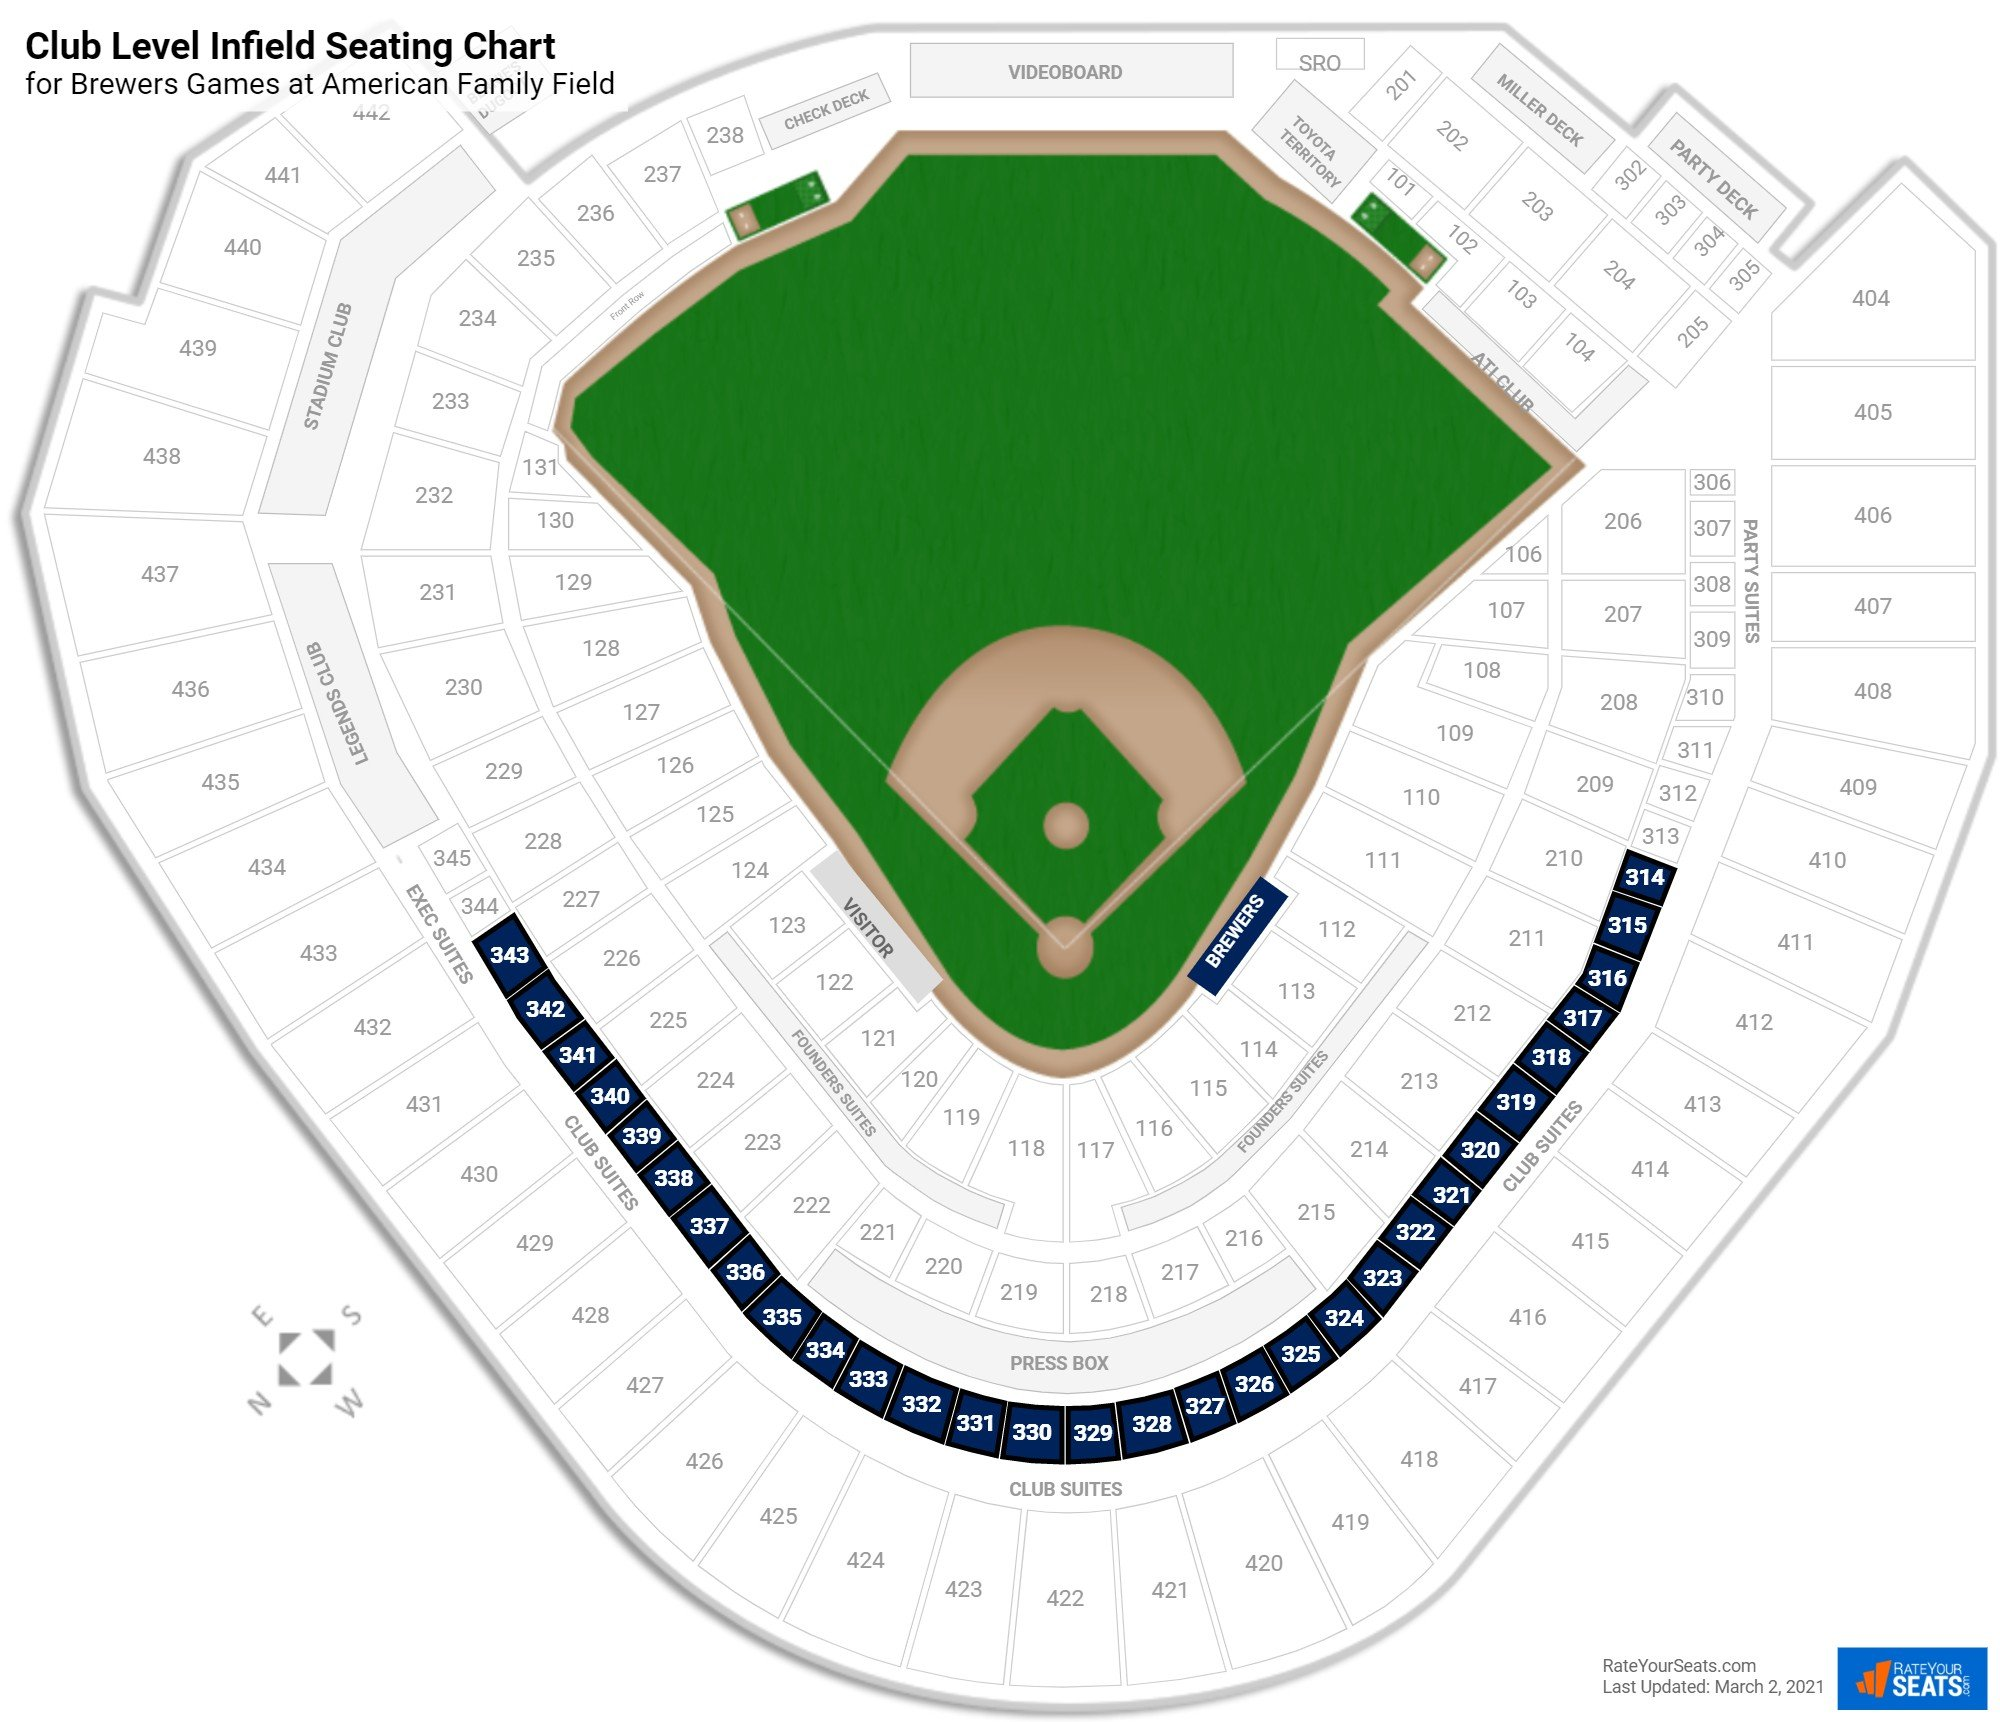 Miller Park Club Level Infield seating chart